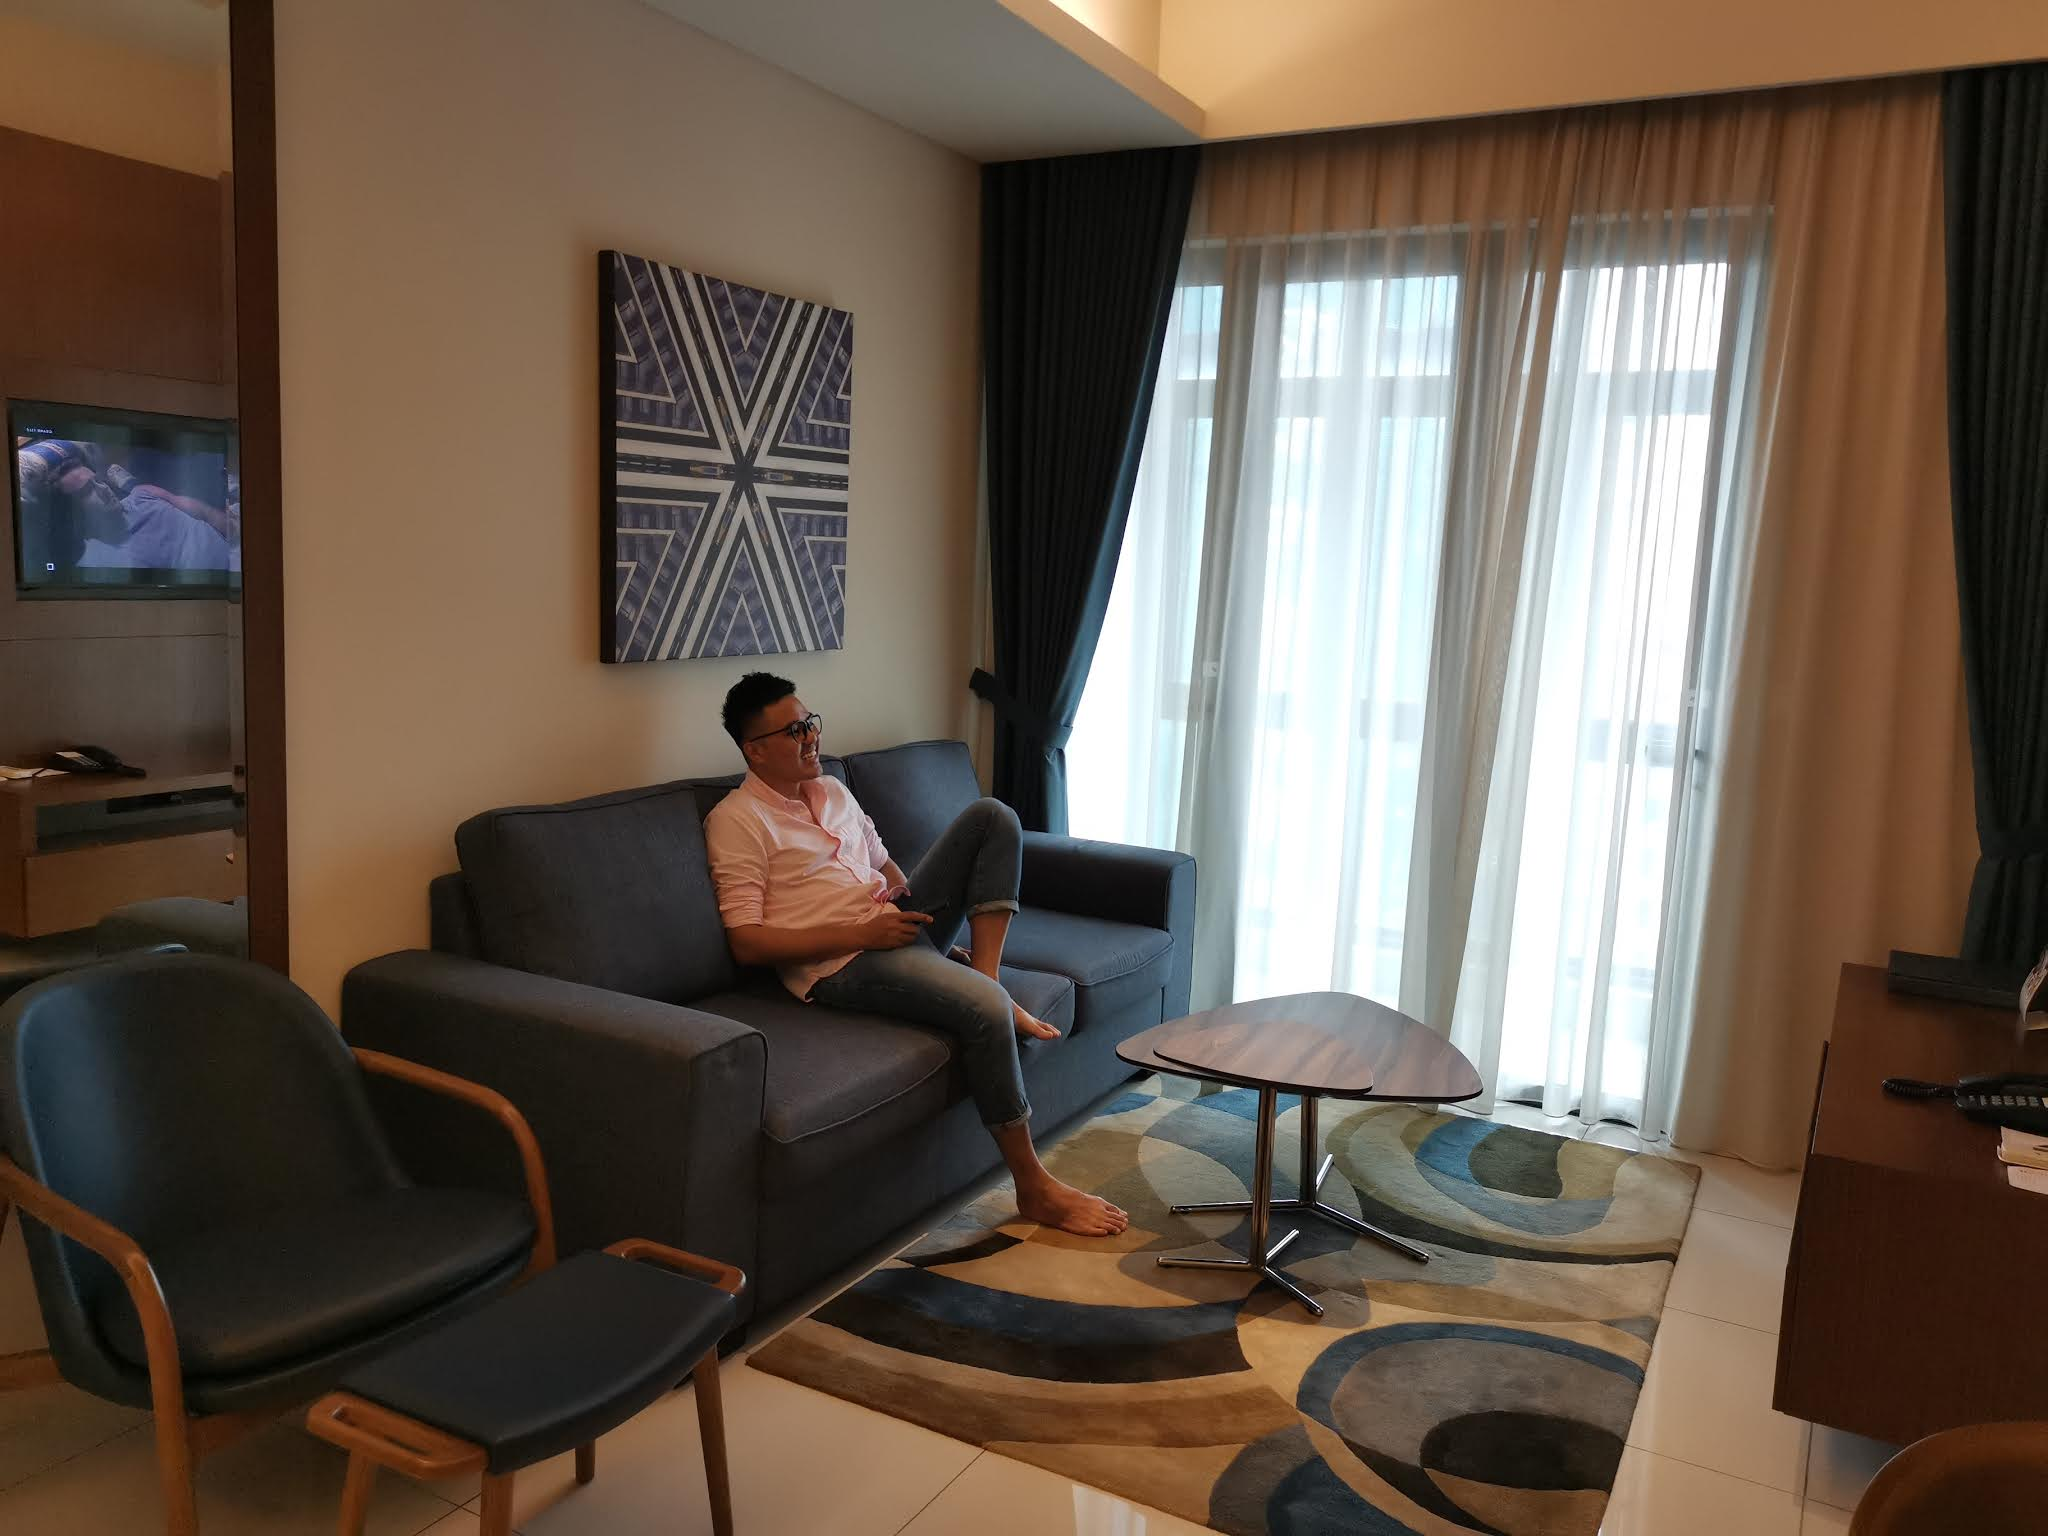 REVIEW PENGALAMAN MENGINAP DI TRIBECA SERVICED SUITES BUKIT BINTANG